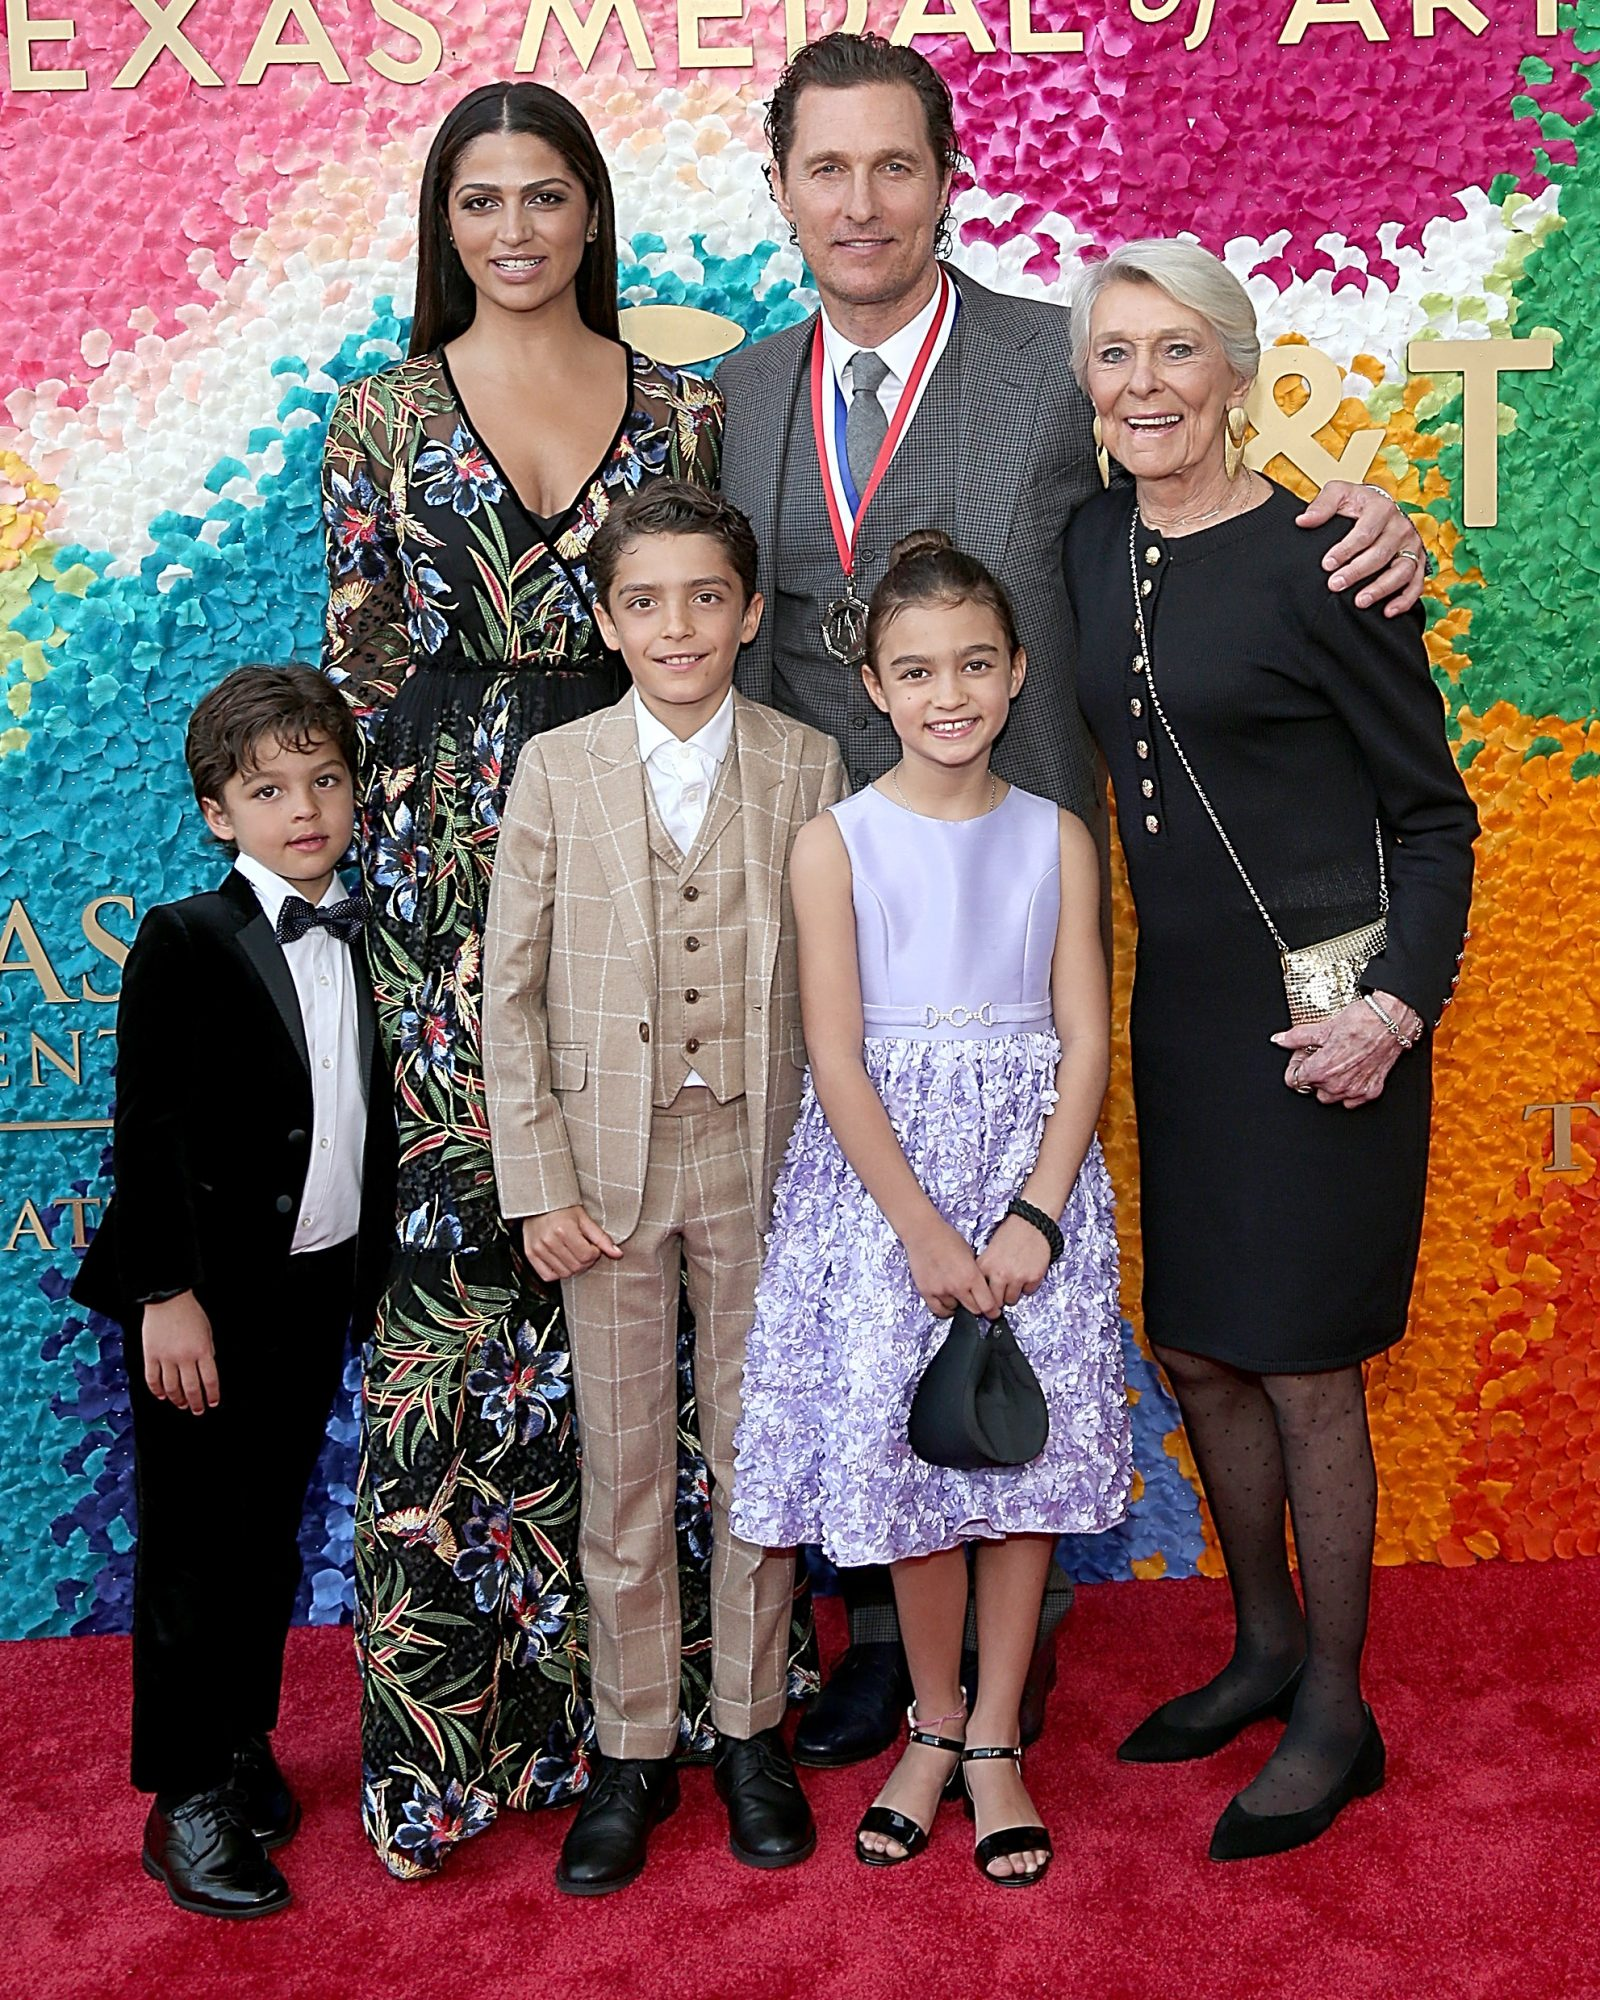 matthew mcconaughey and camila alves with their children